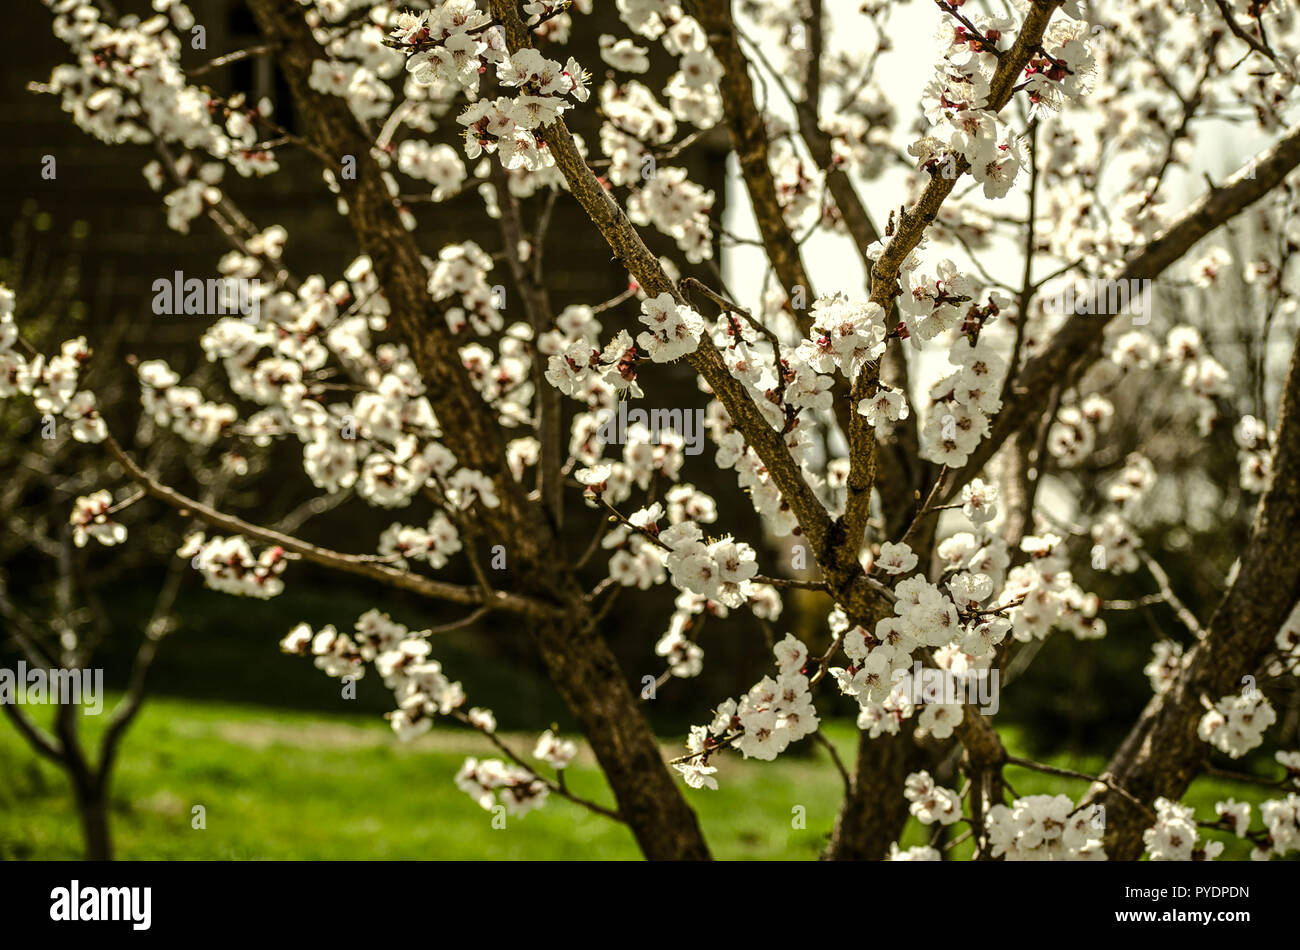 The Beginning Of Spring In Armenia Flowering Apricot Tree Stock